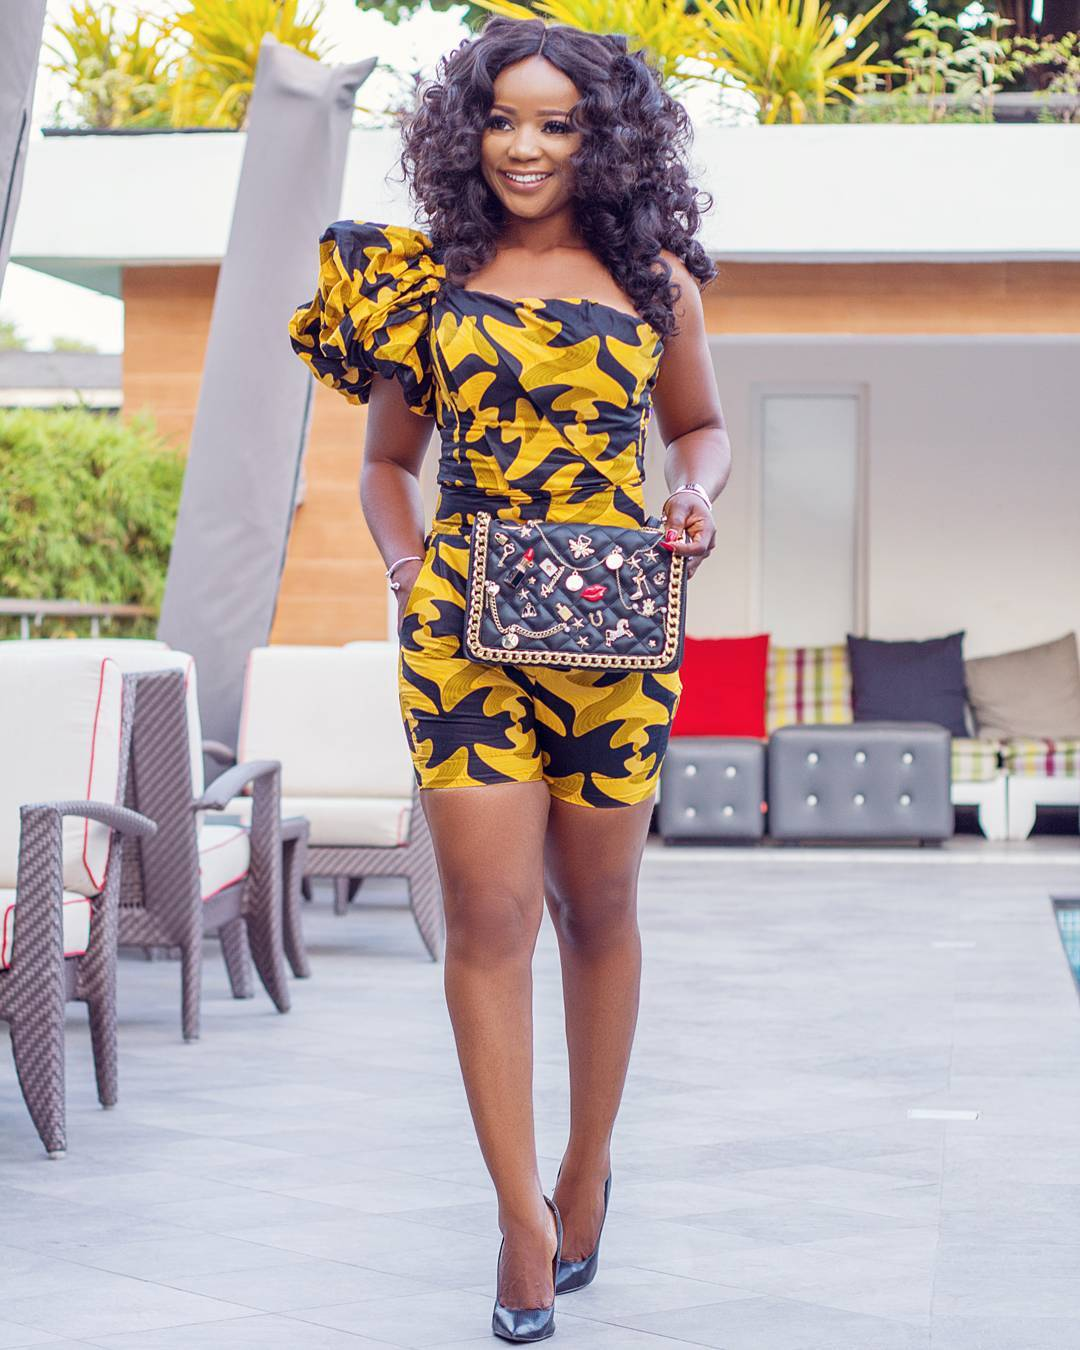 This Style Blogger Will Show You How To Wear One Ankara Print In 4 Ways Fpn